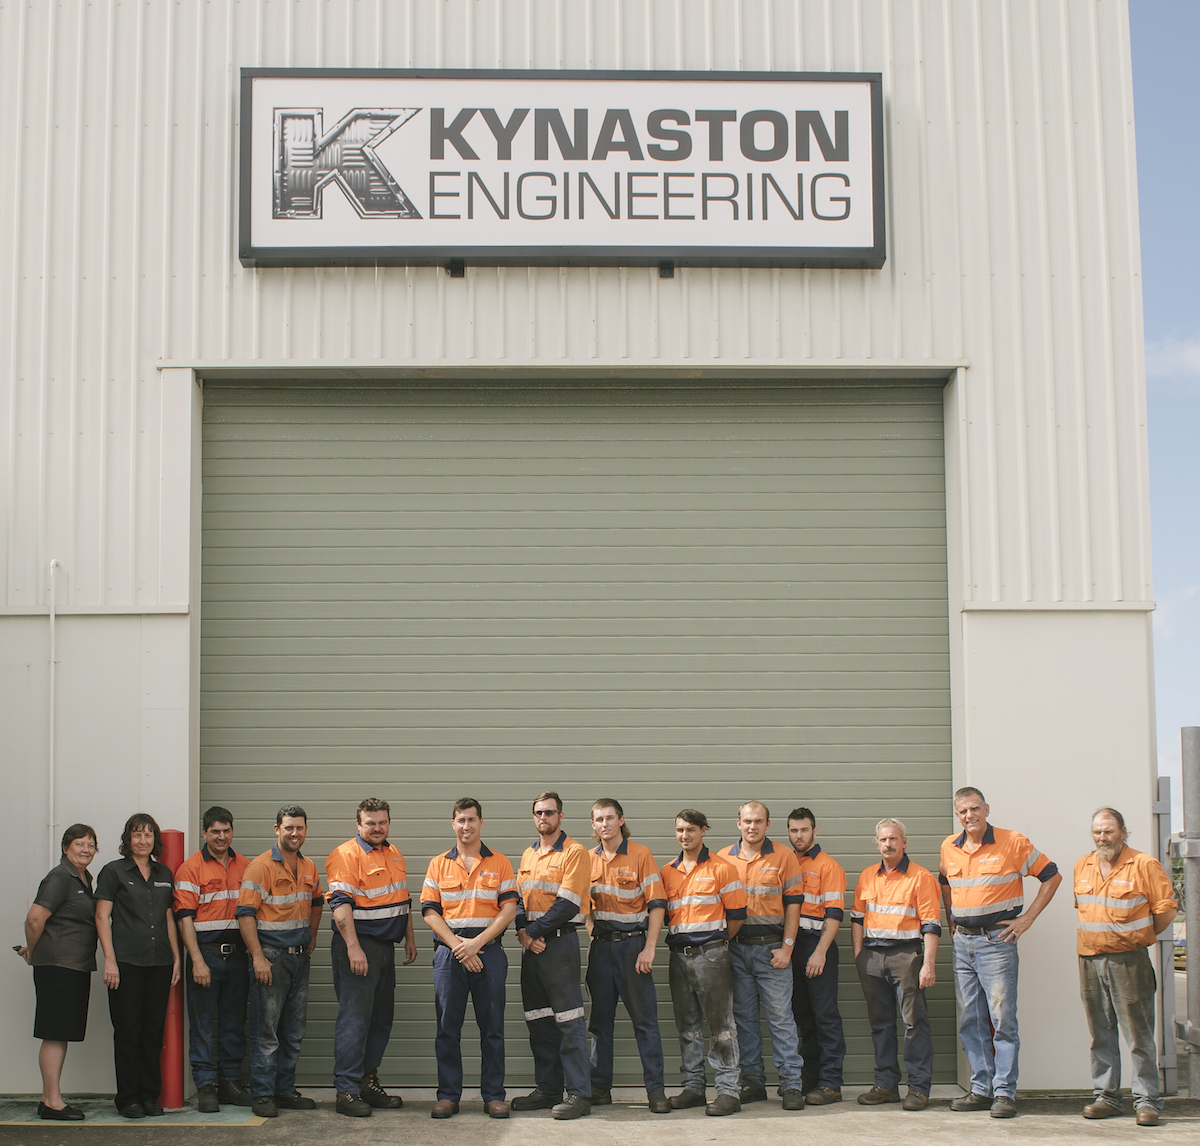 About Kynaston Engineering